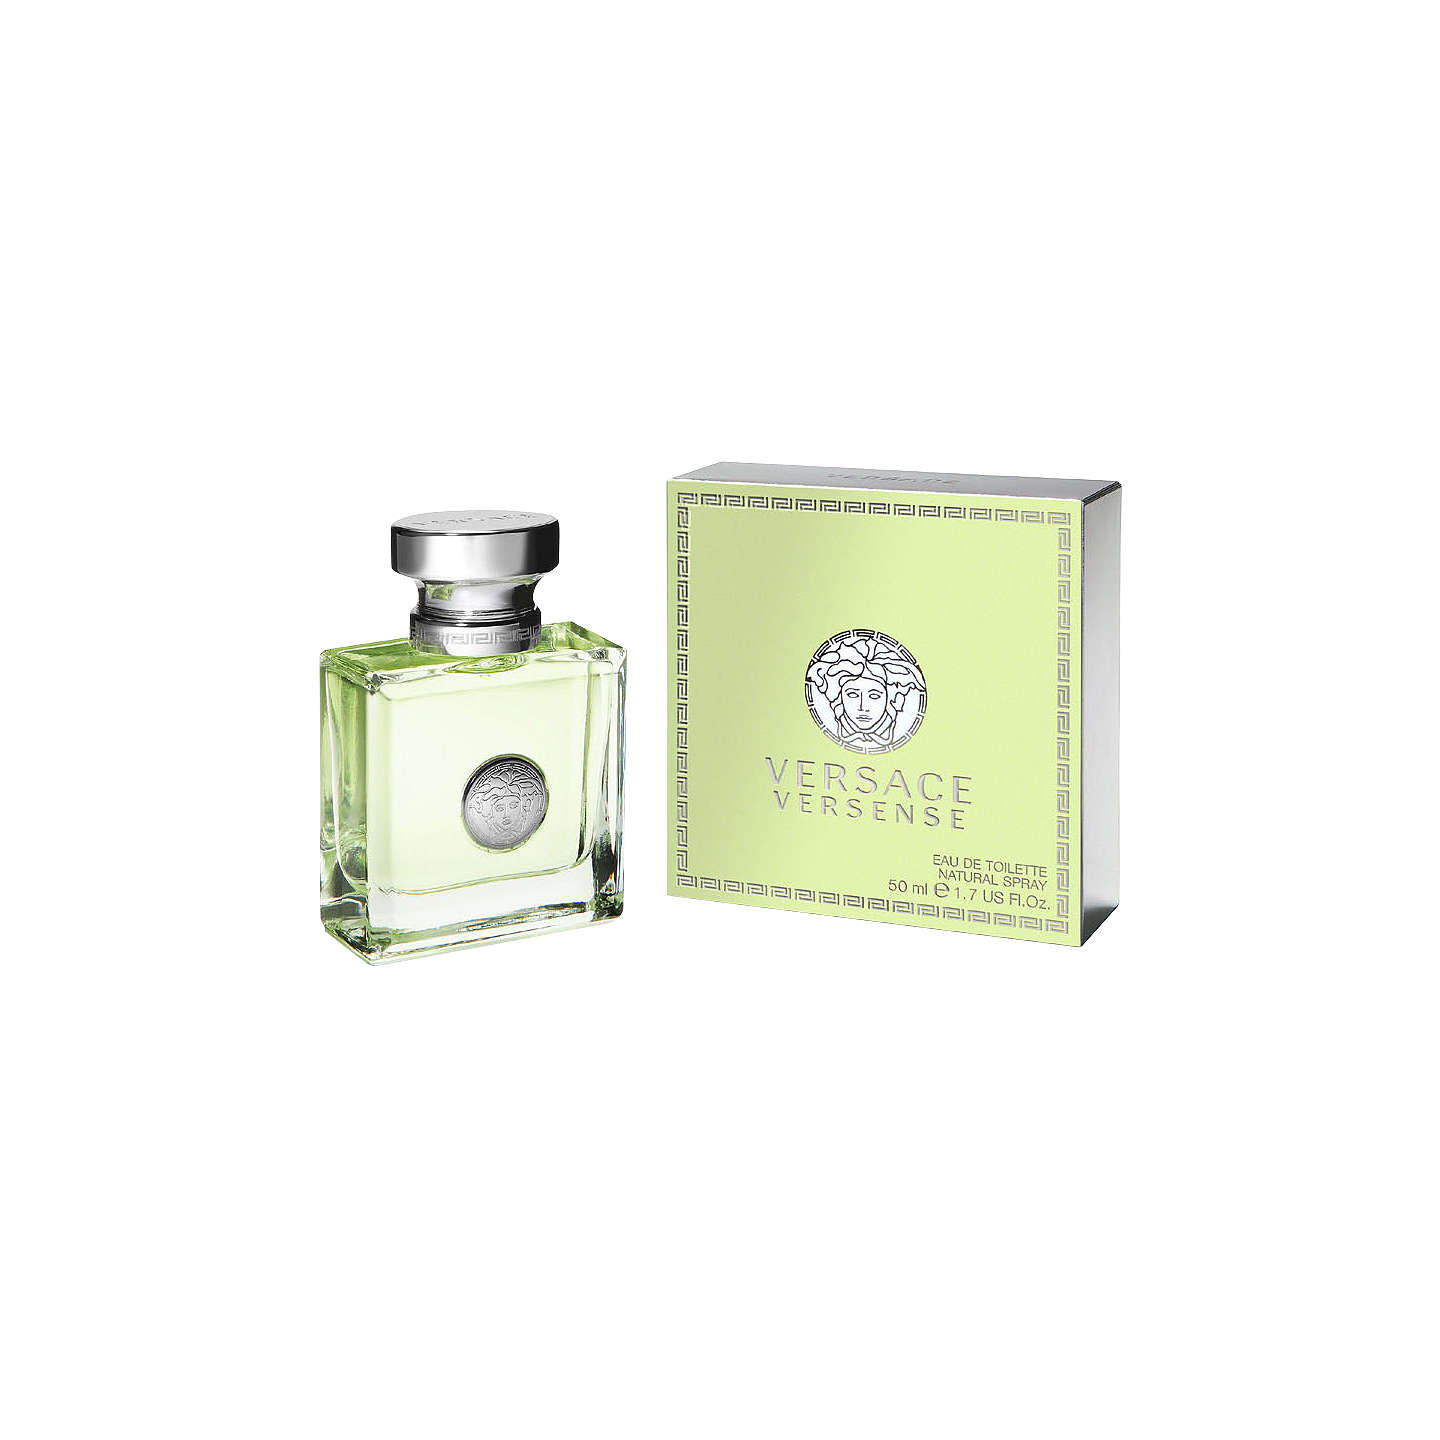 BuyVersace Versense Eau de Toilette, 50ml Online at johnlewis.com